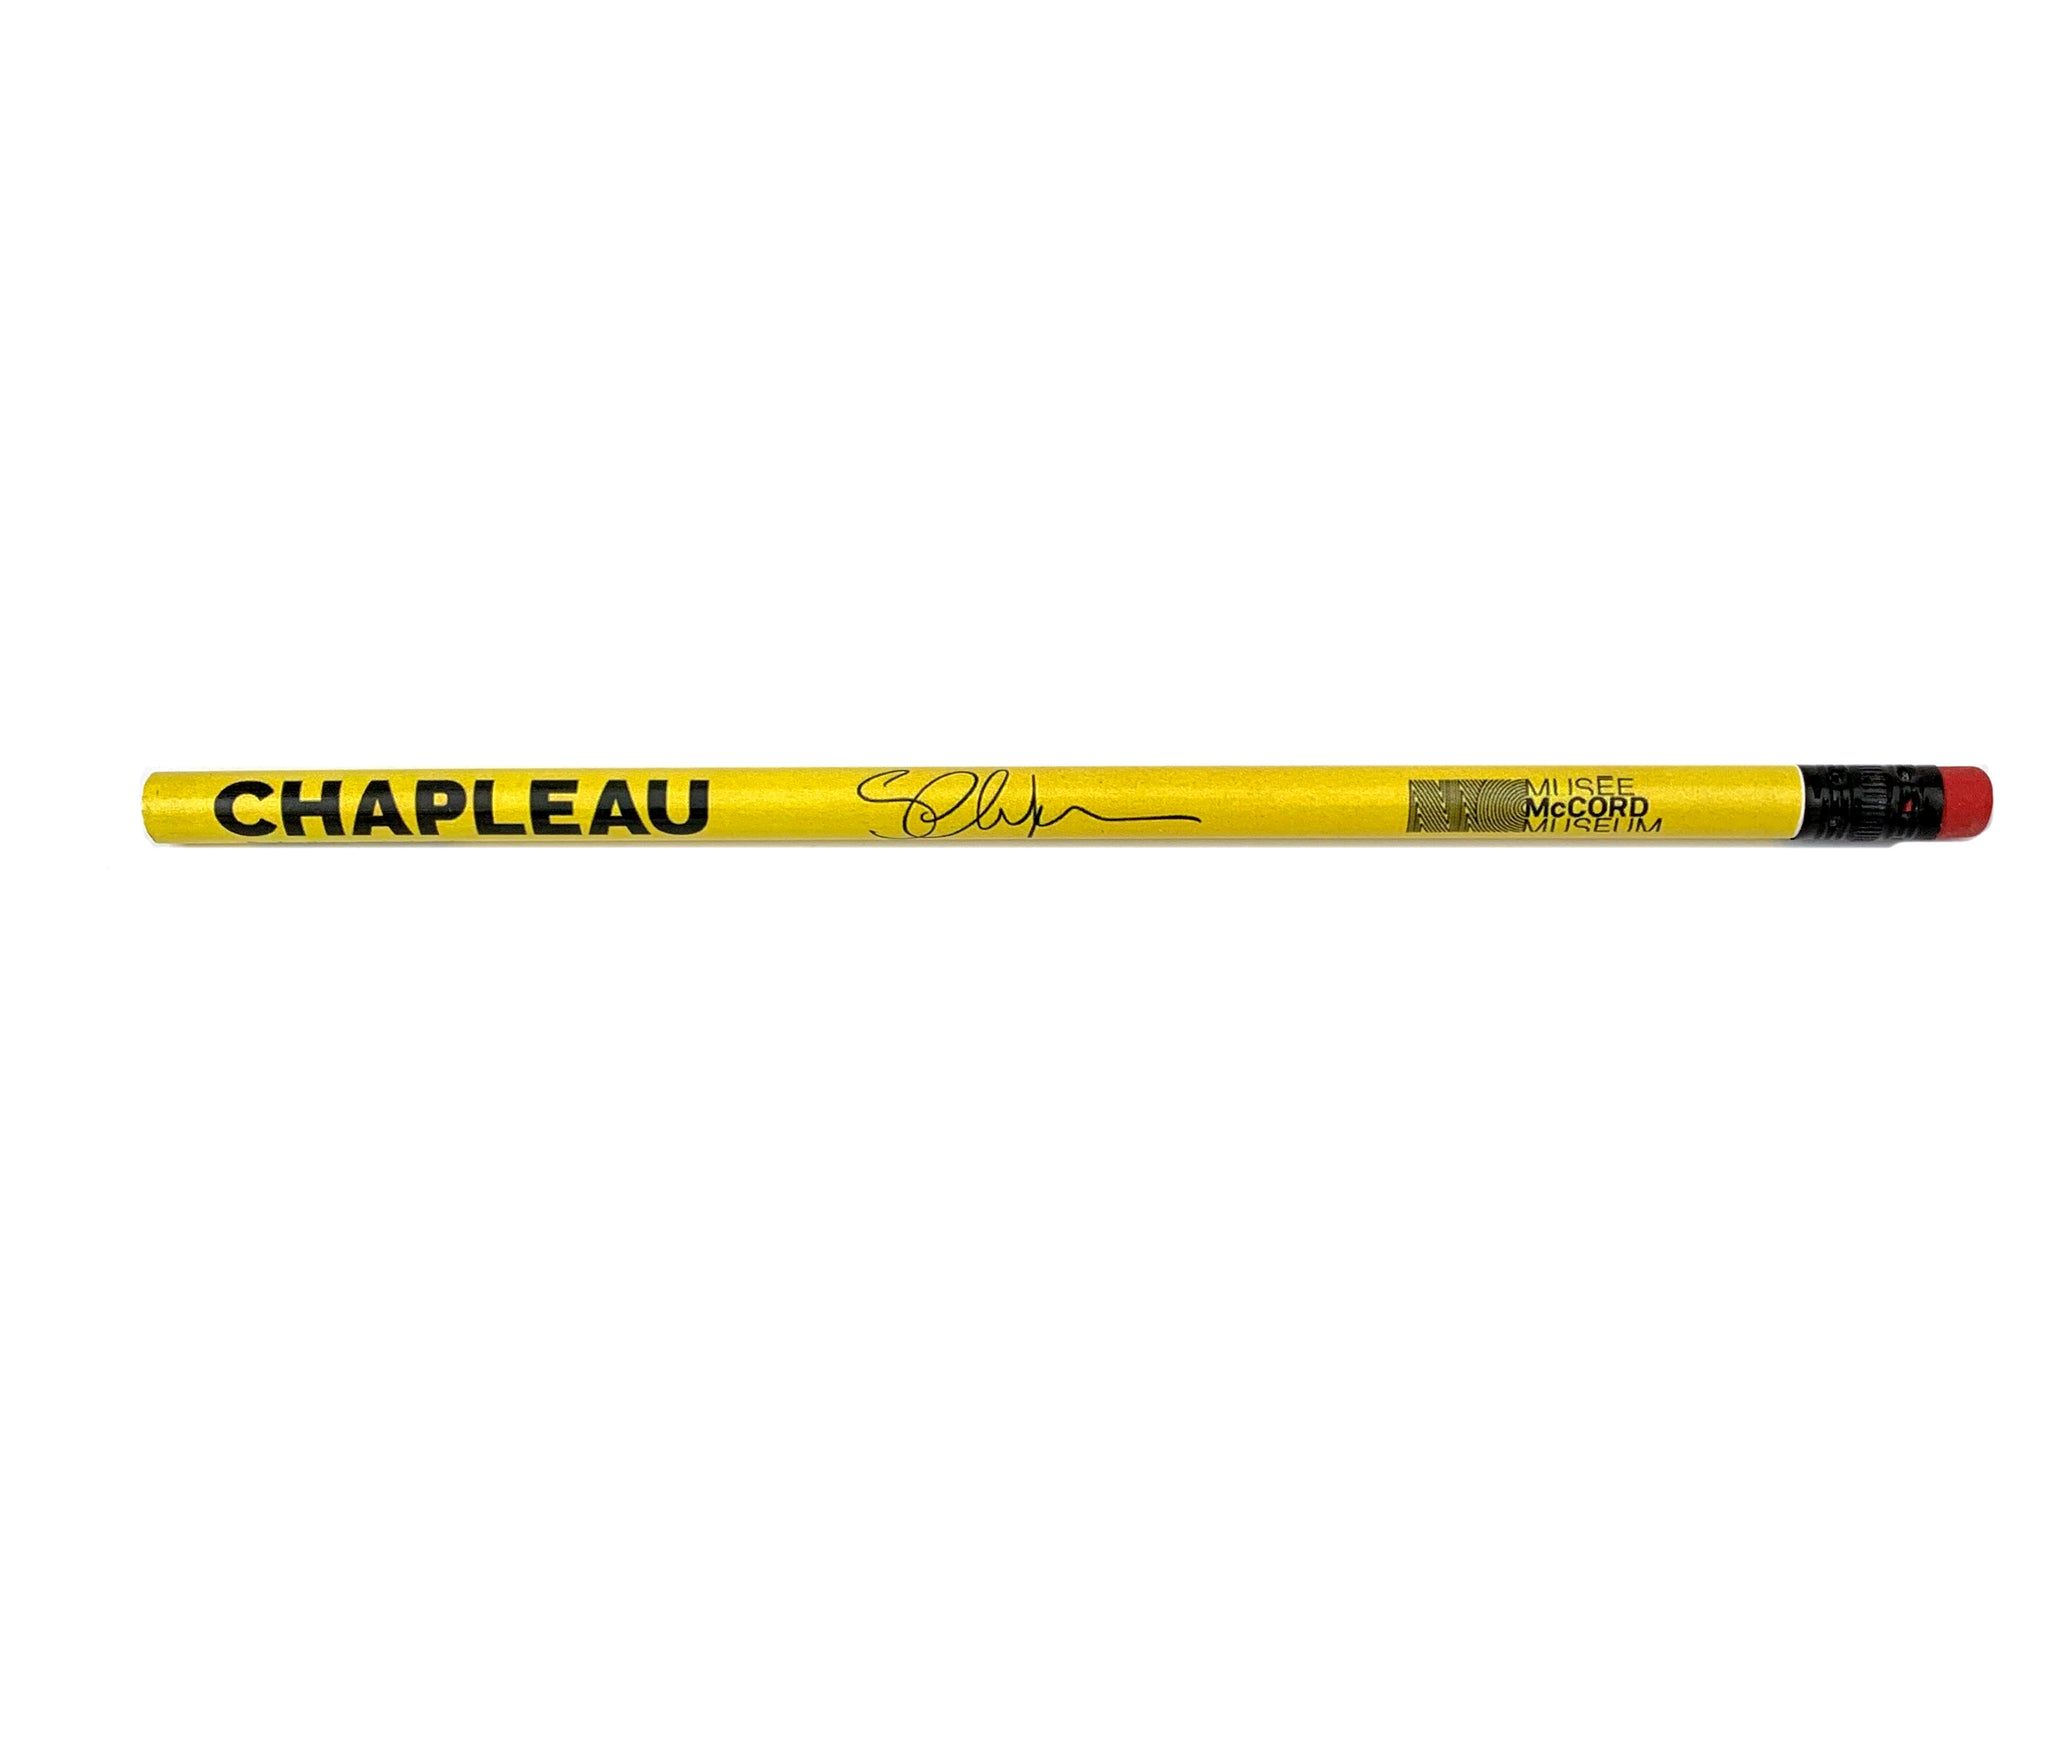 Chapleau Exhibition pencil